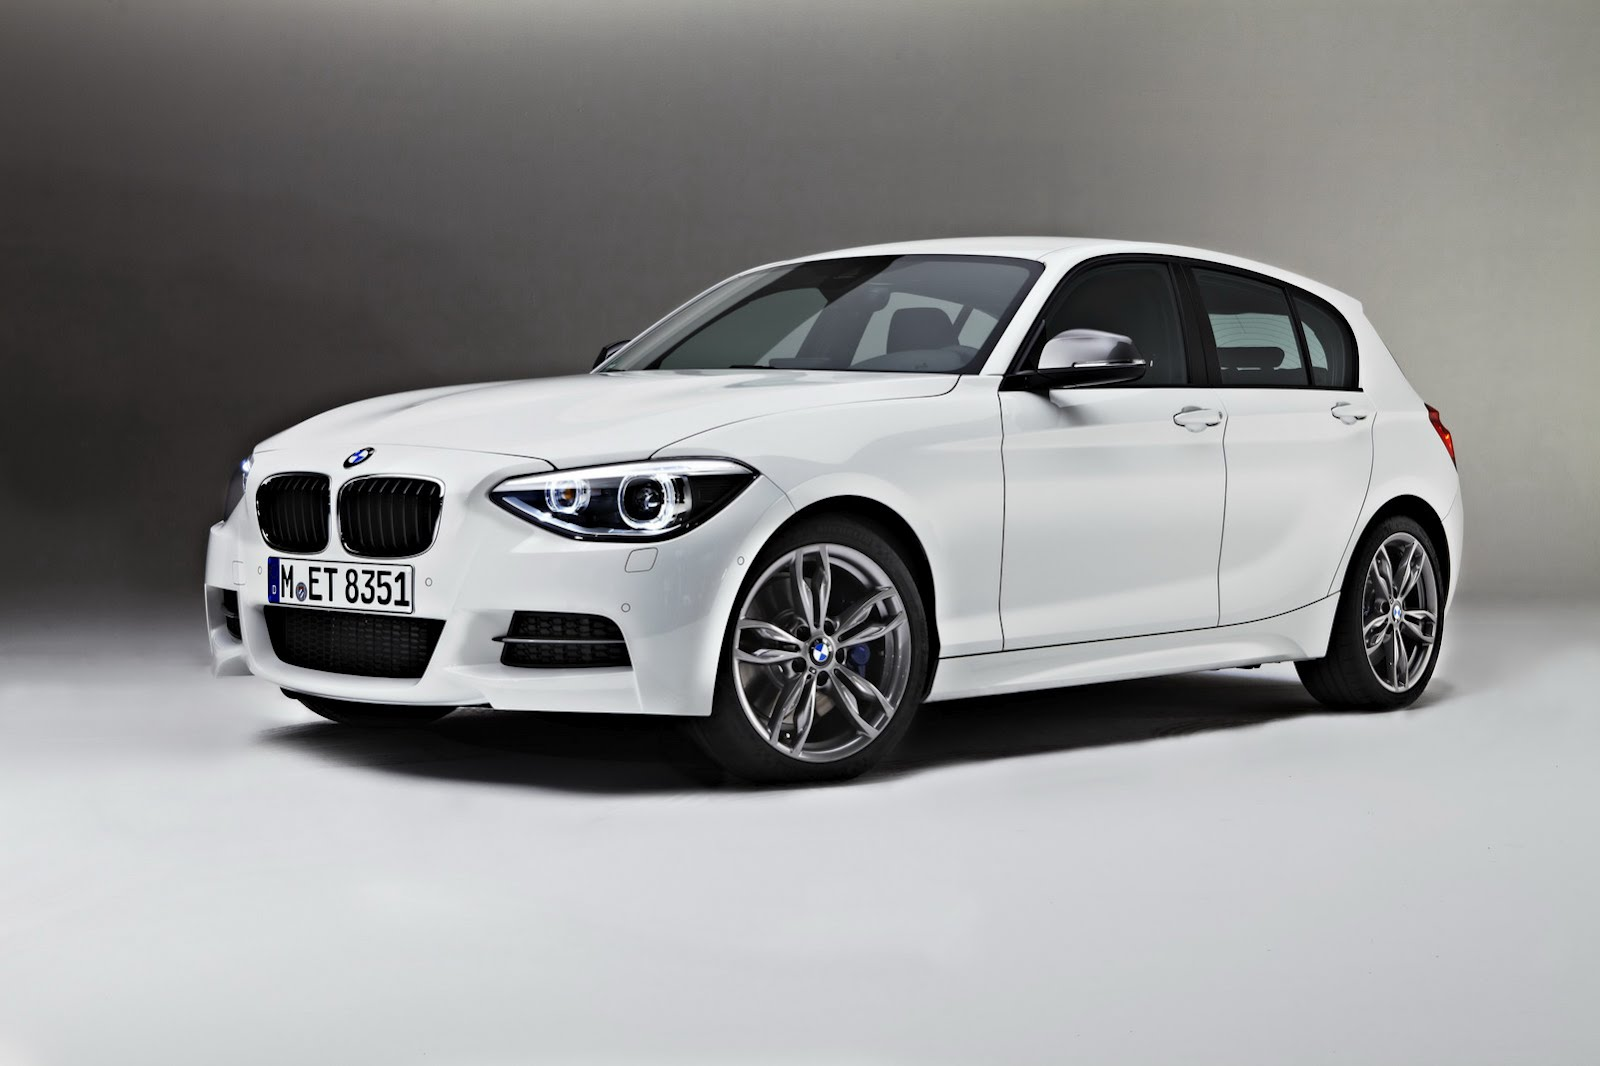 Bmw 118 2006 Review Amazing Pictures And Images Look At The Car